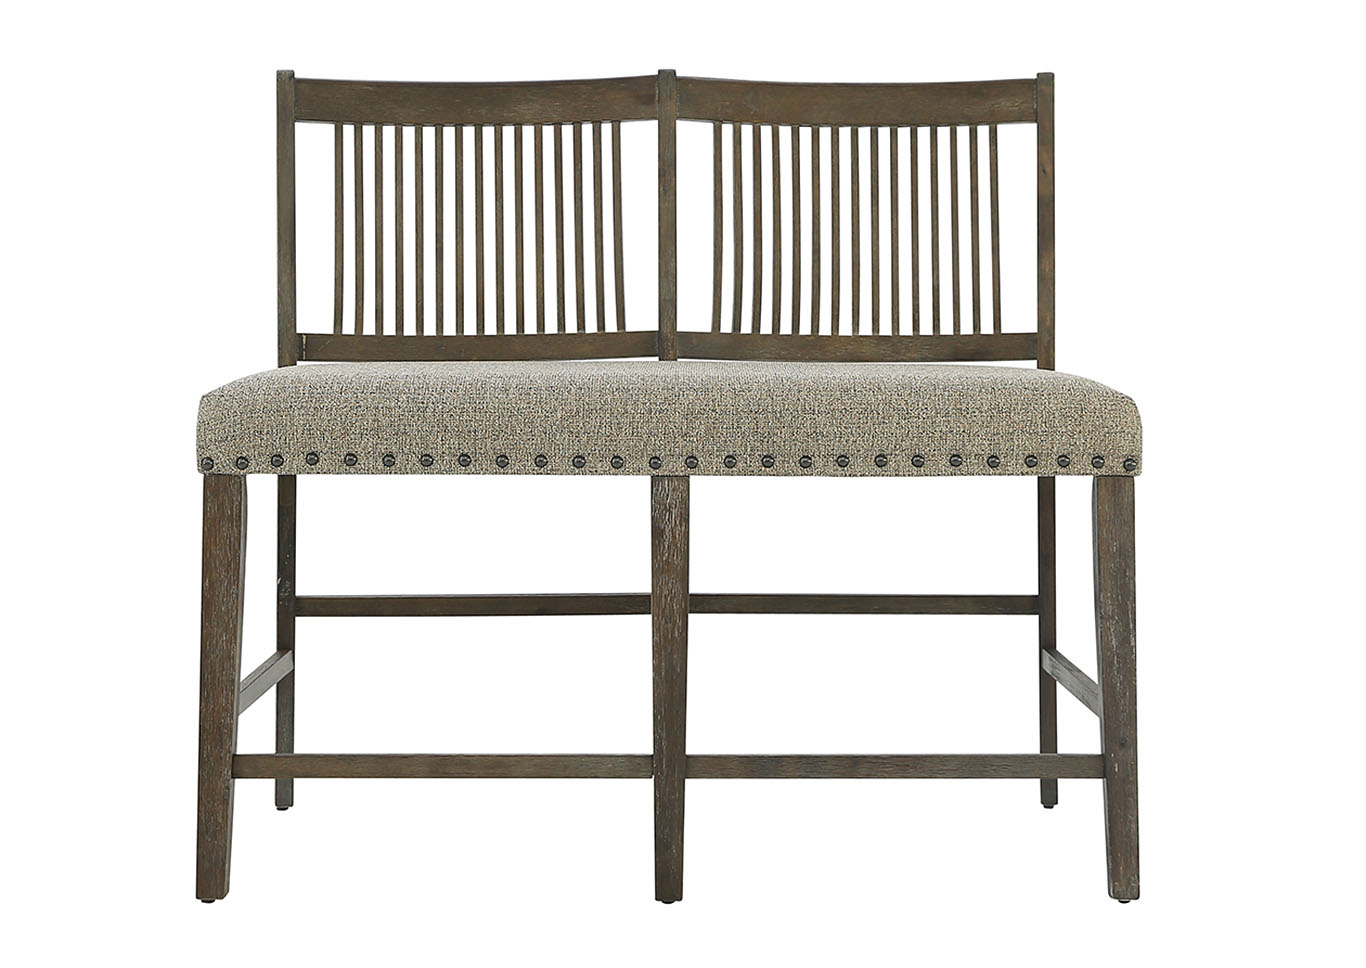 CHARLESTON II COUNTER HEIGHT BENCH,LANE FURNITURE